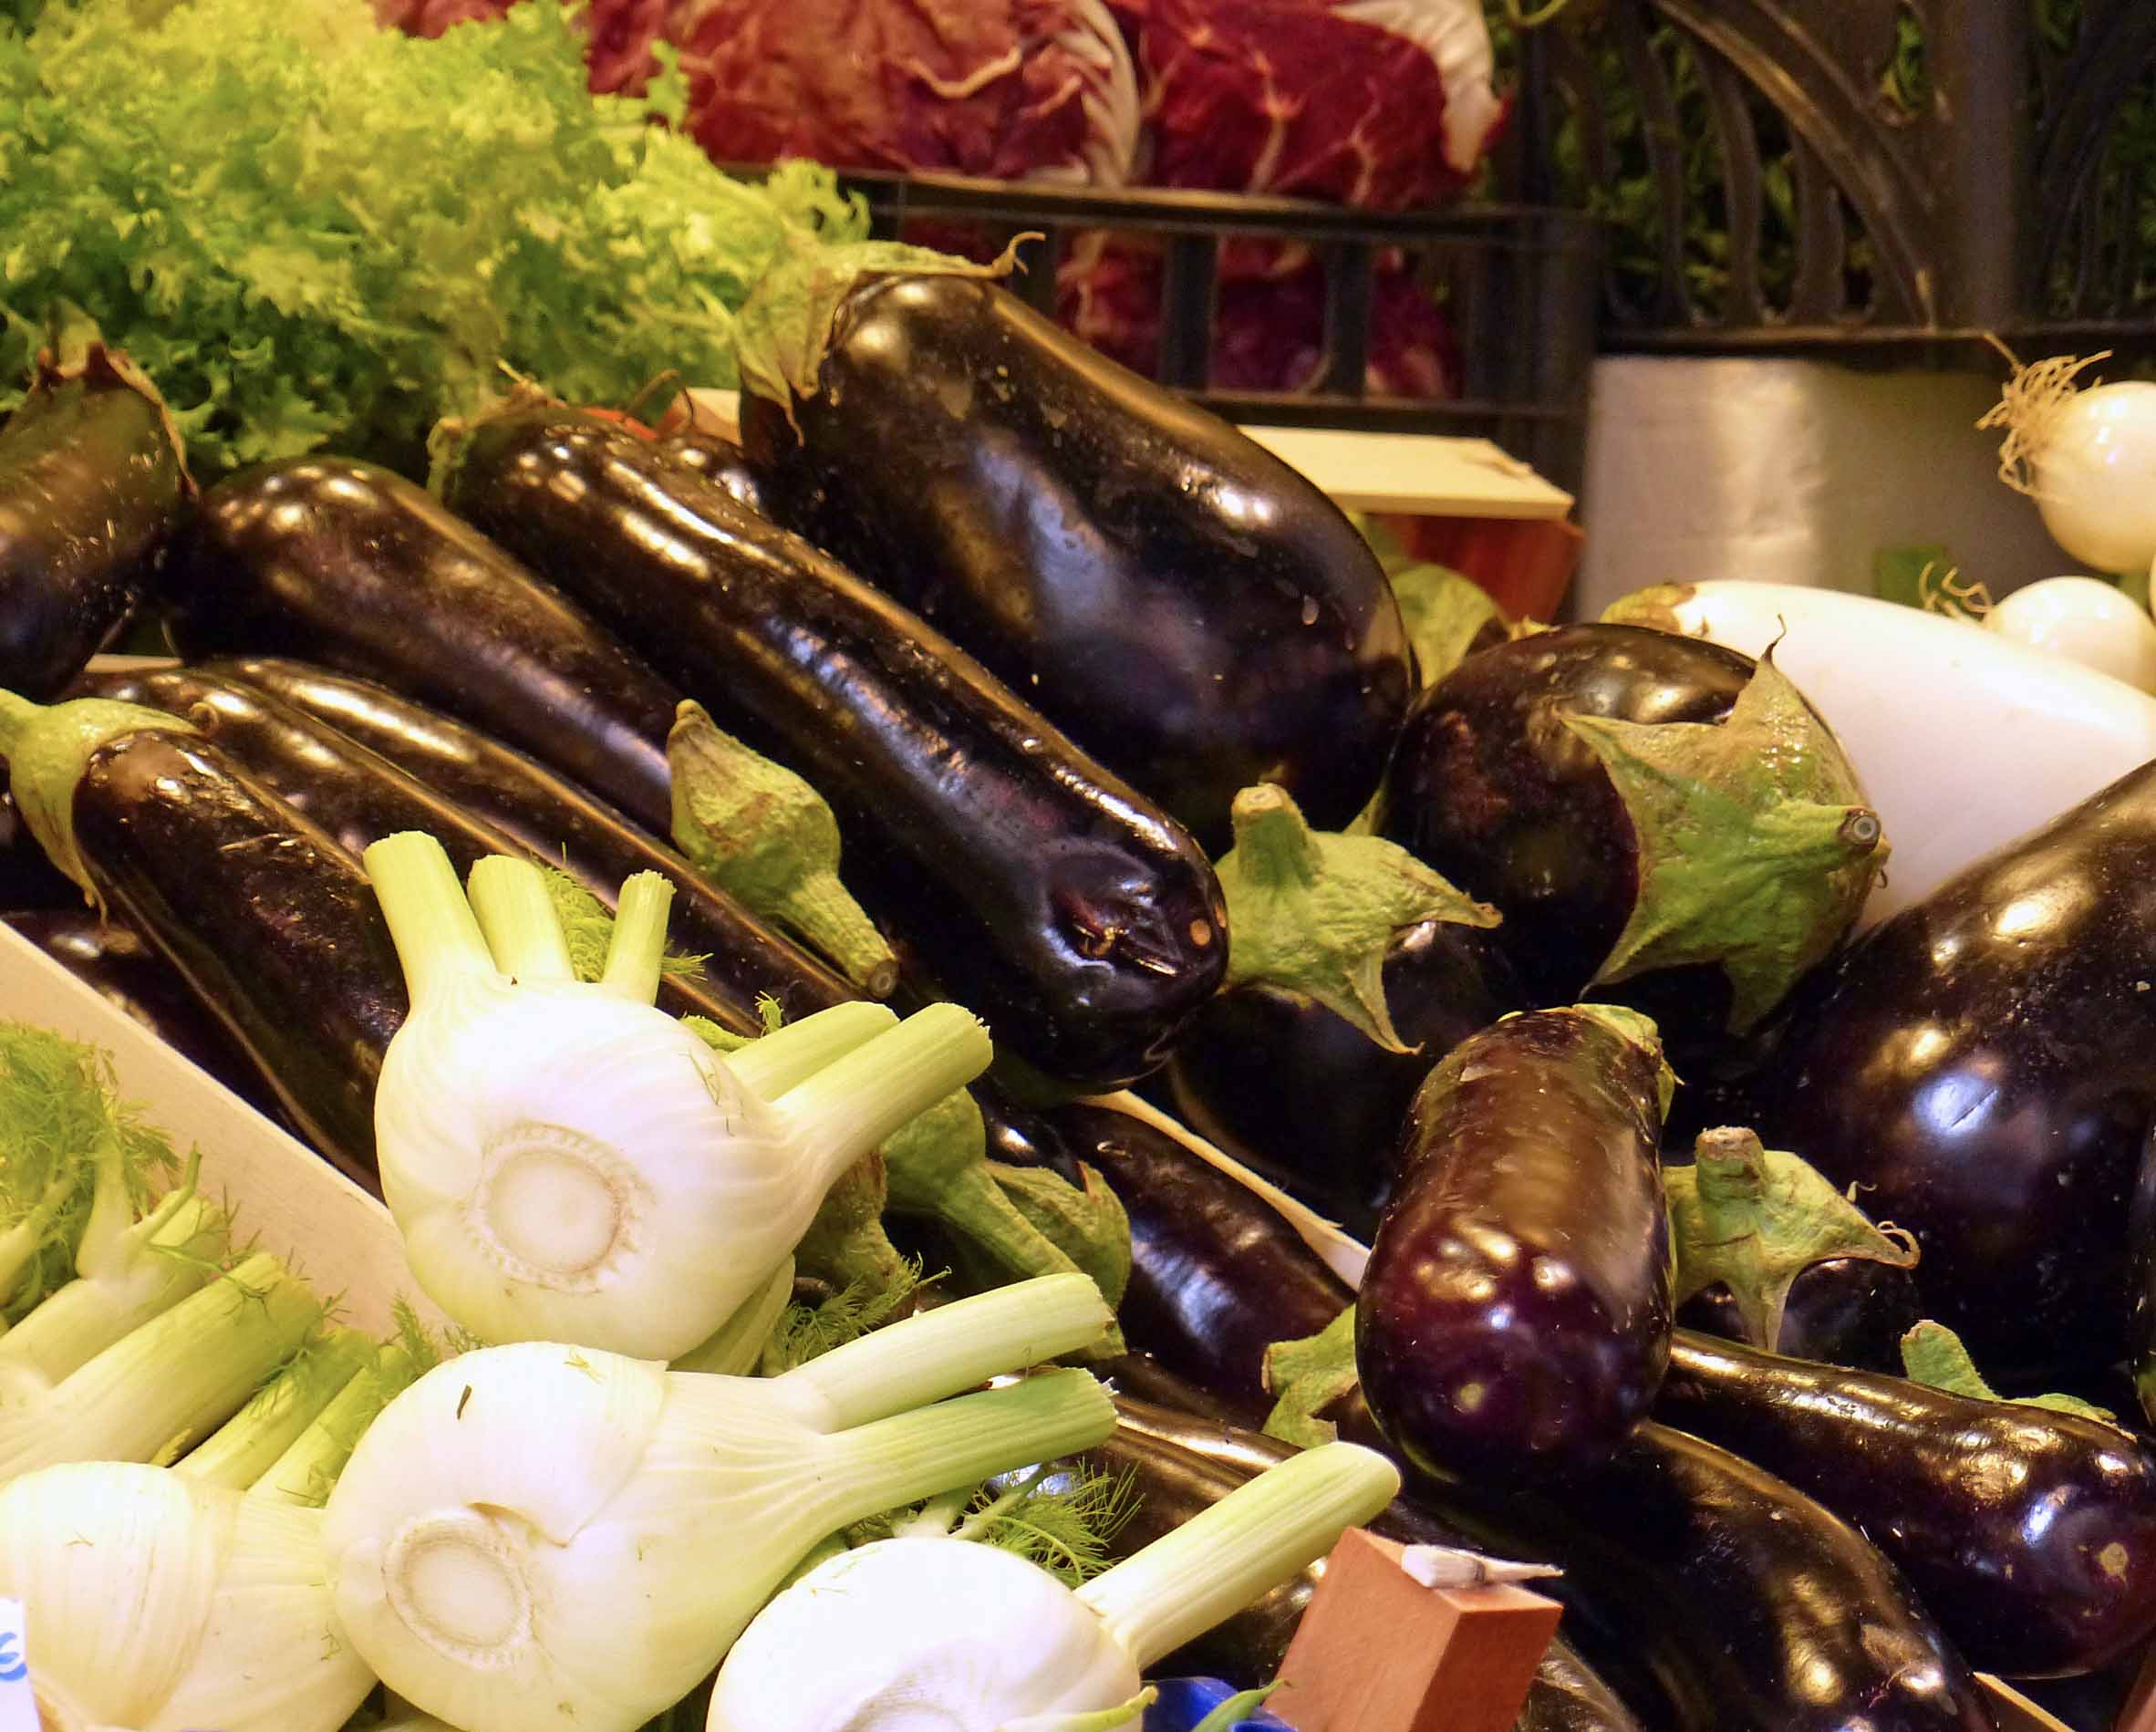 Fennel bulbs and aubergines